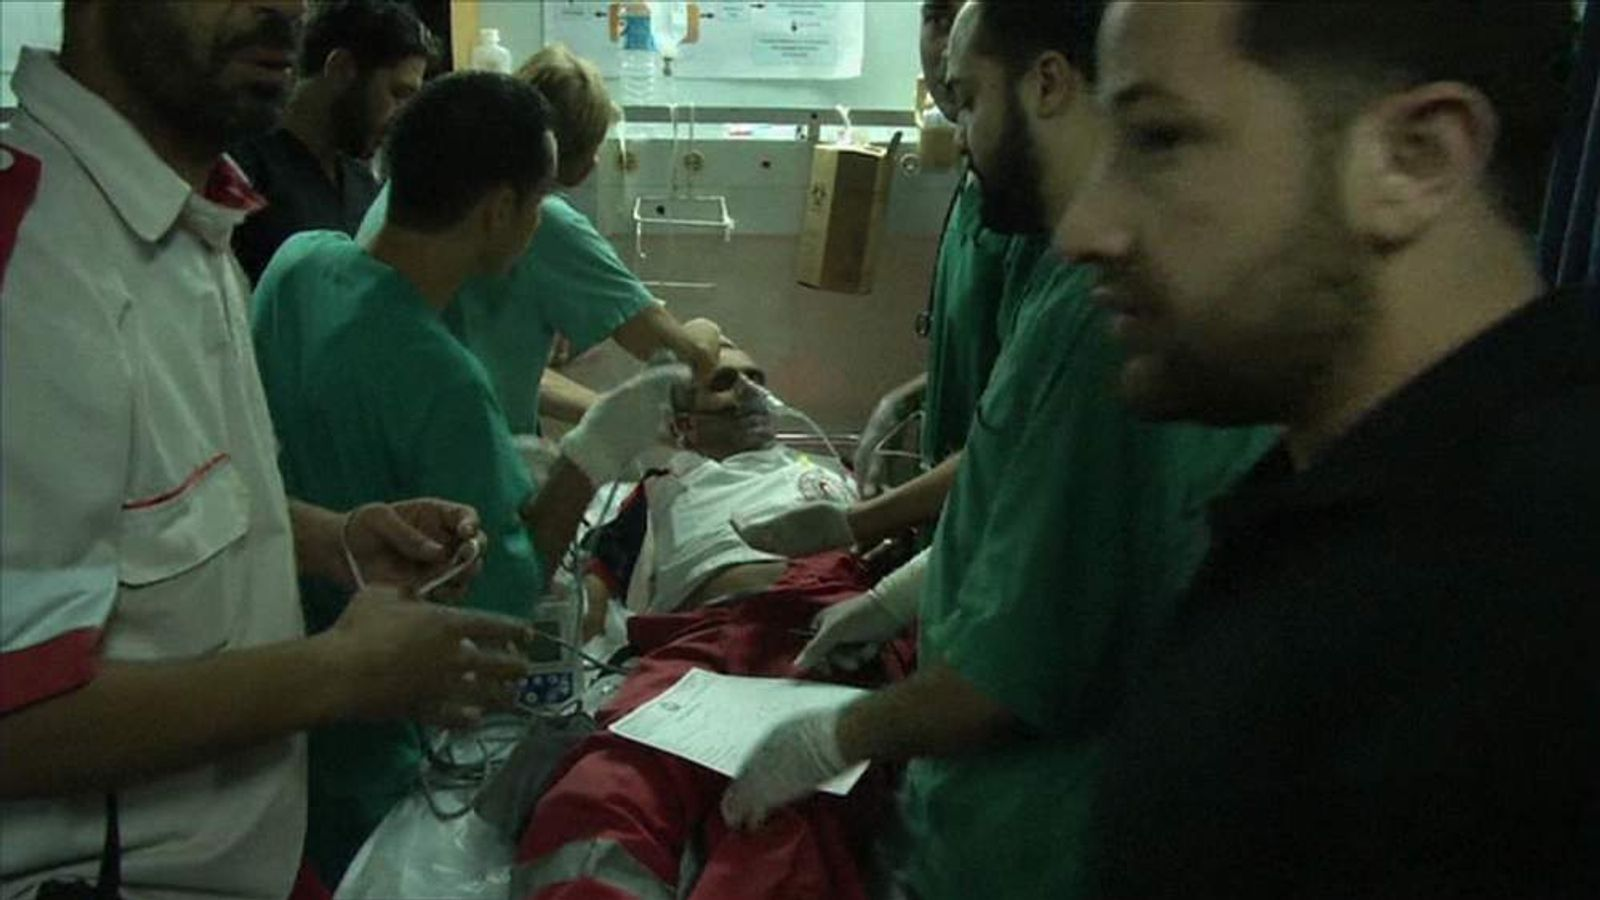 Wounded palestinian